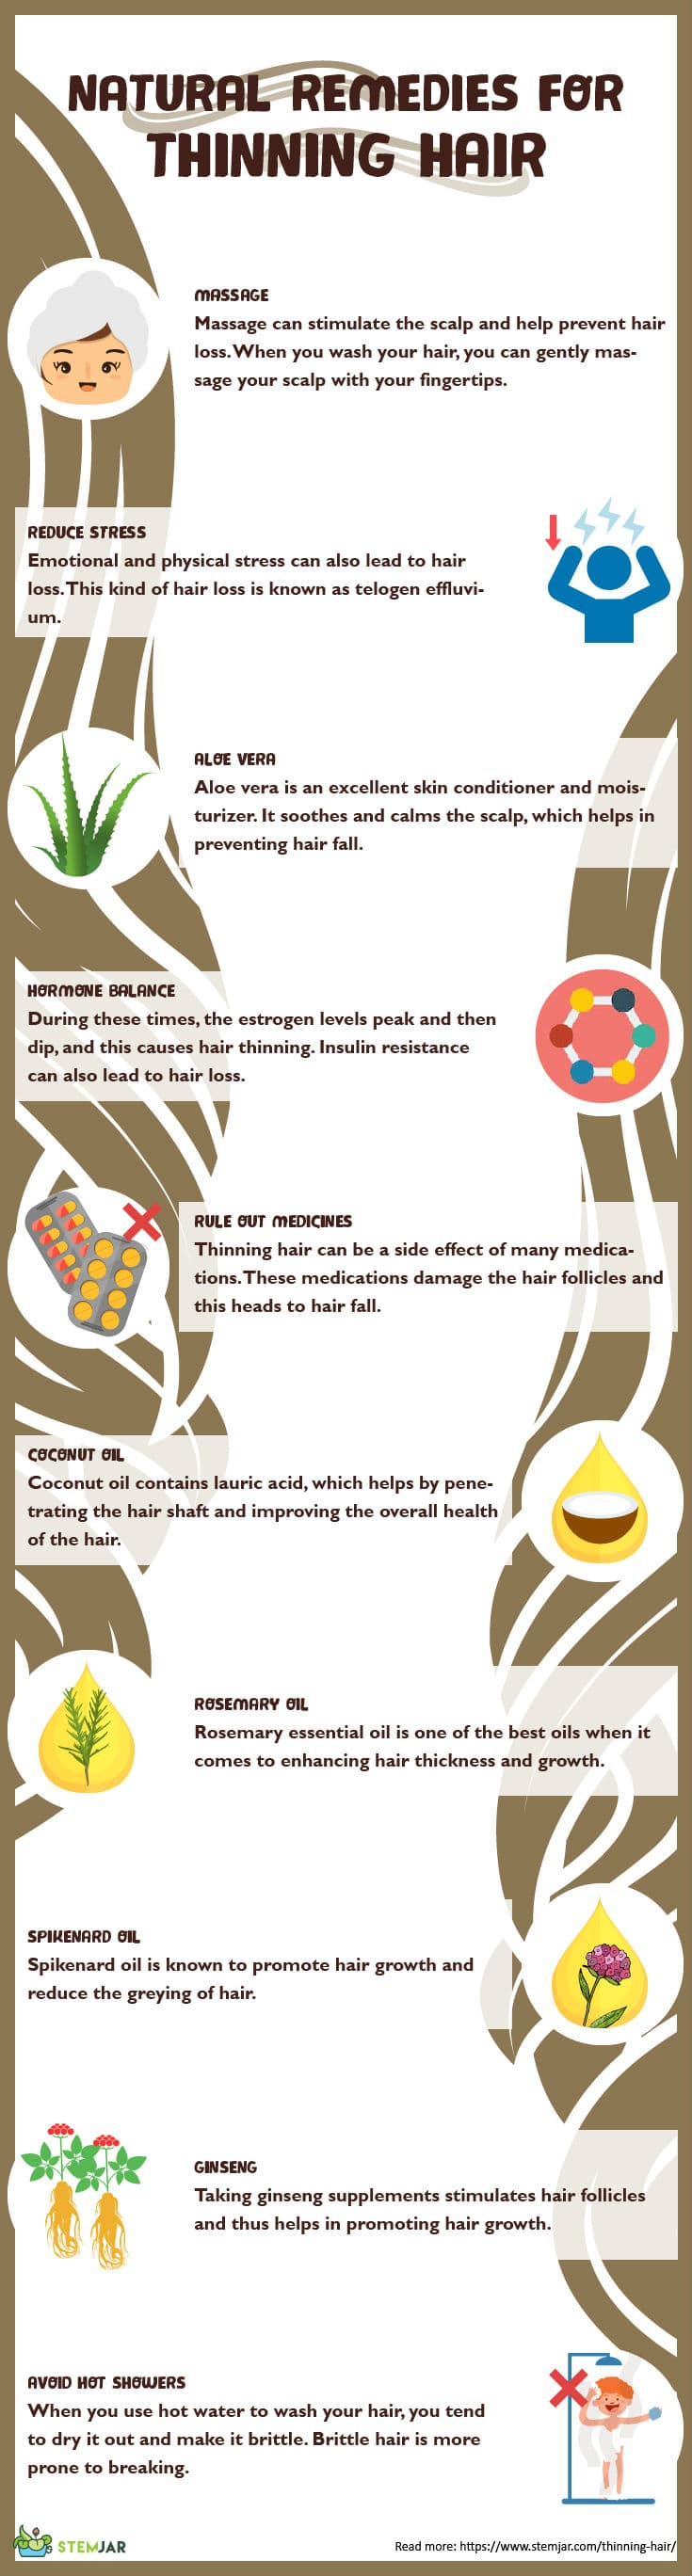 Thinning Hair infographic